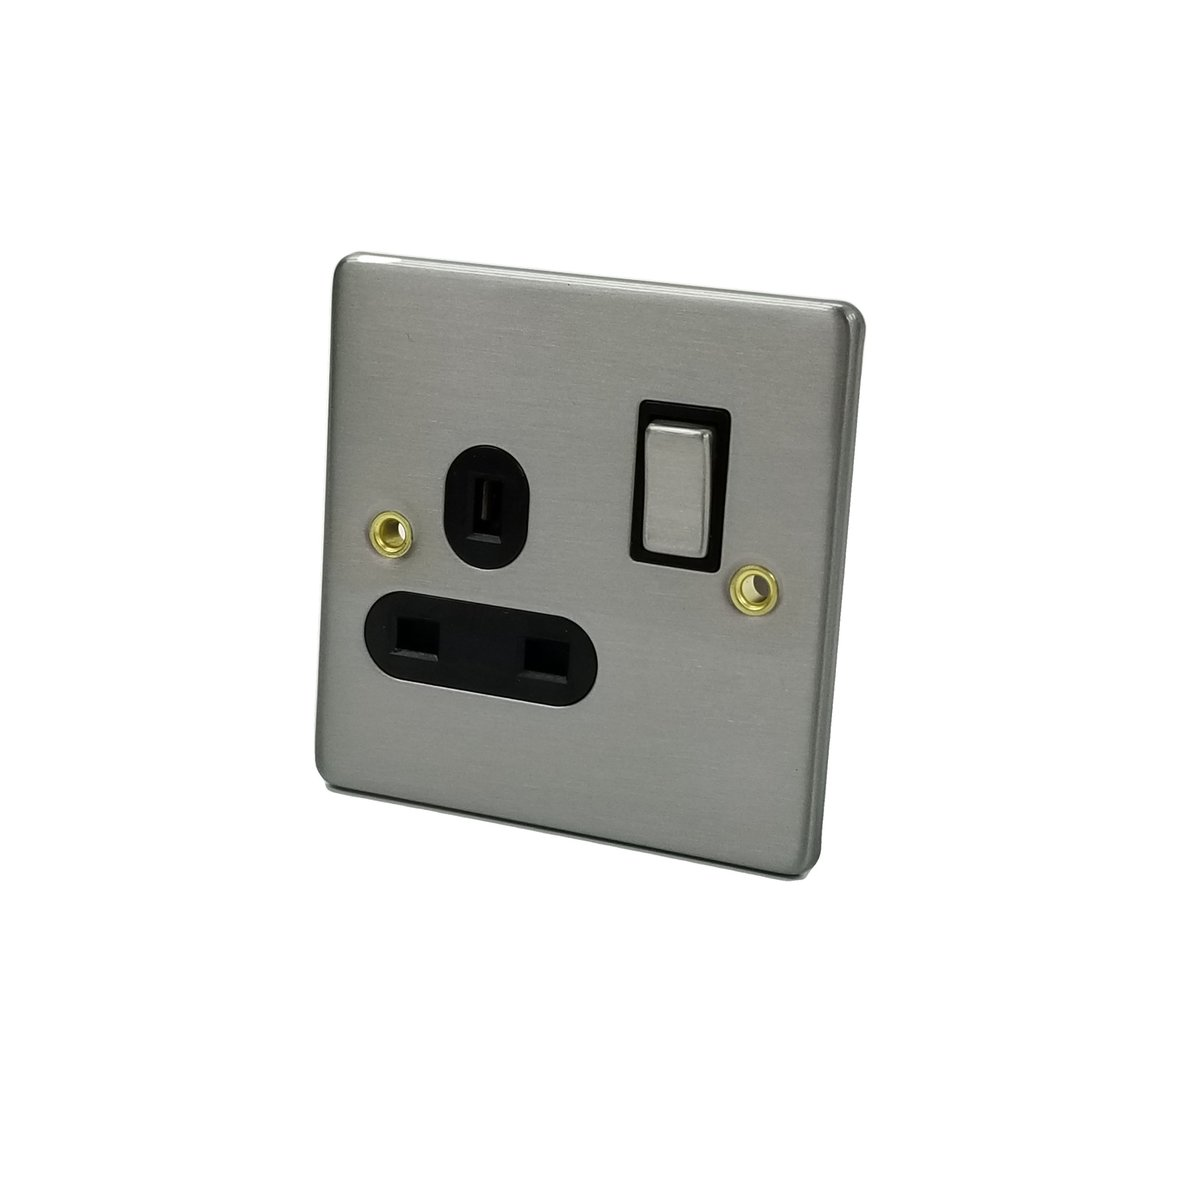 Metal Brushed Steel Plate - 1 Gang 13A DP Switched Socket